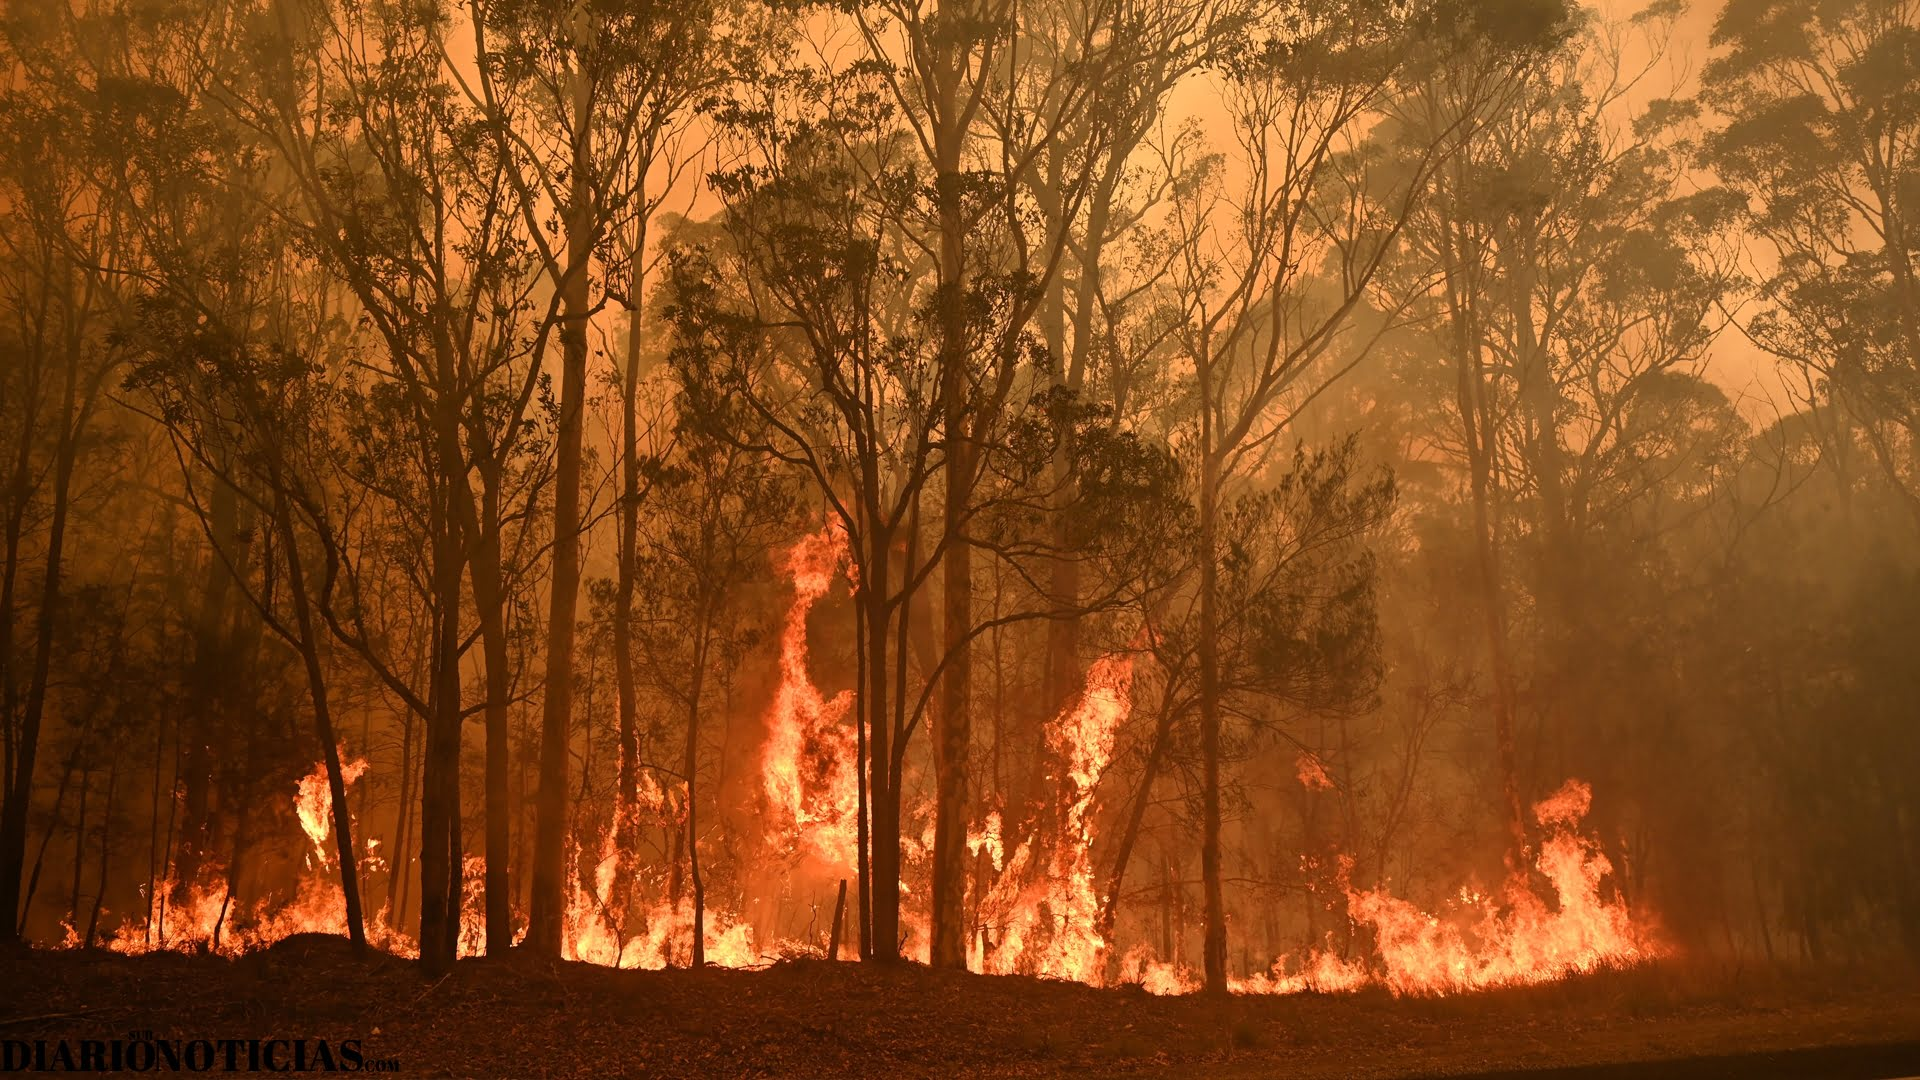 Photo of Humo de los incendios forestales de Australia llegaron a Chile y Argentina